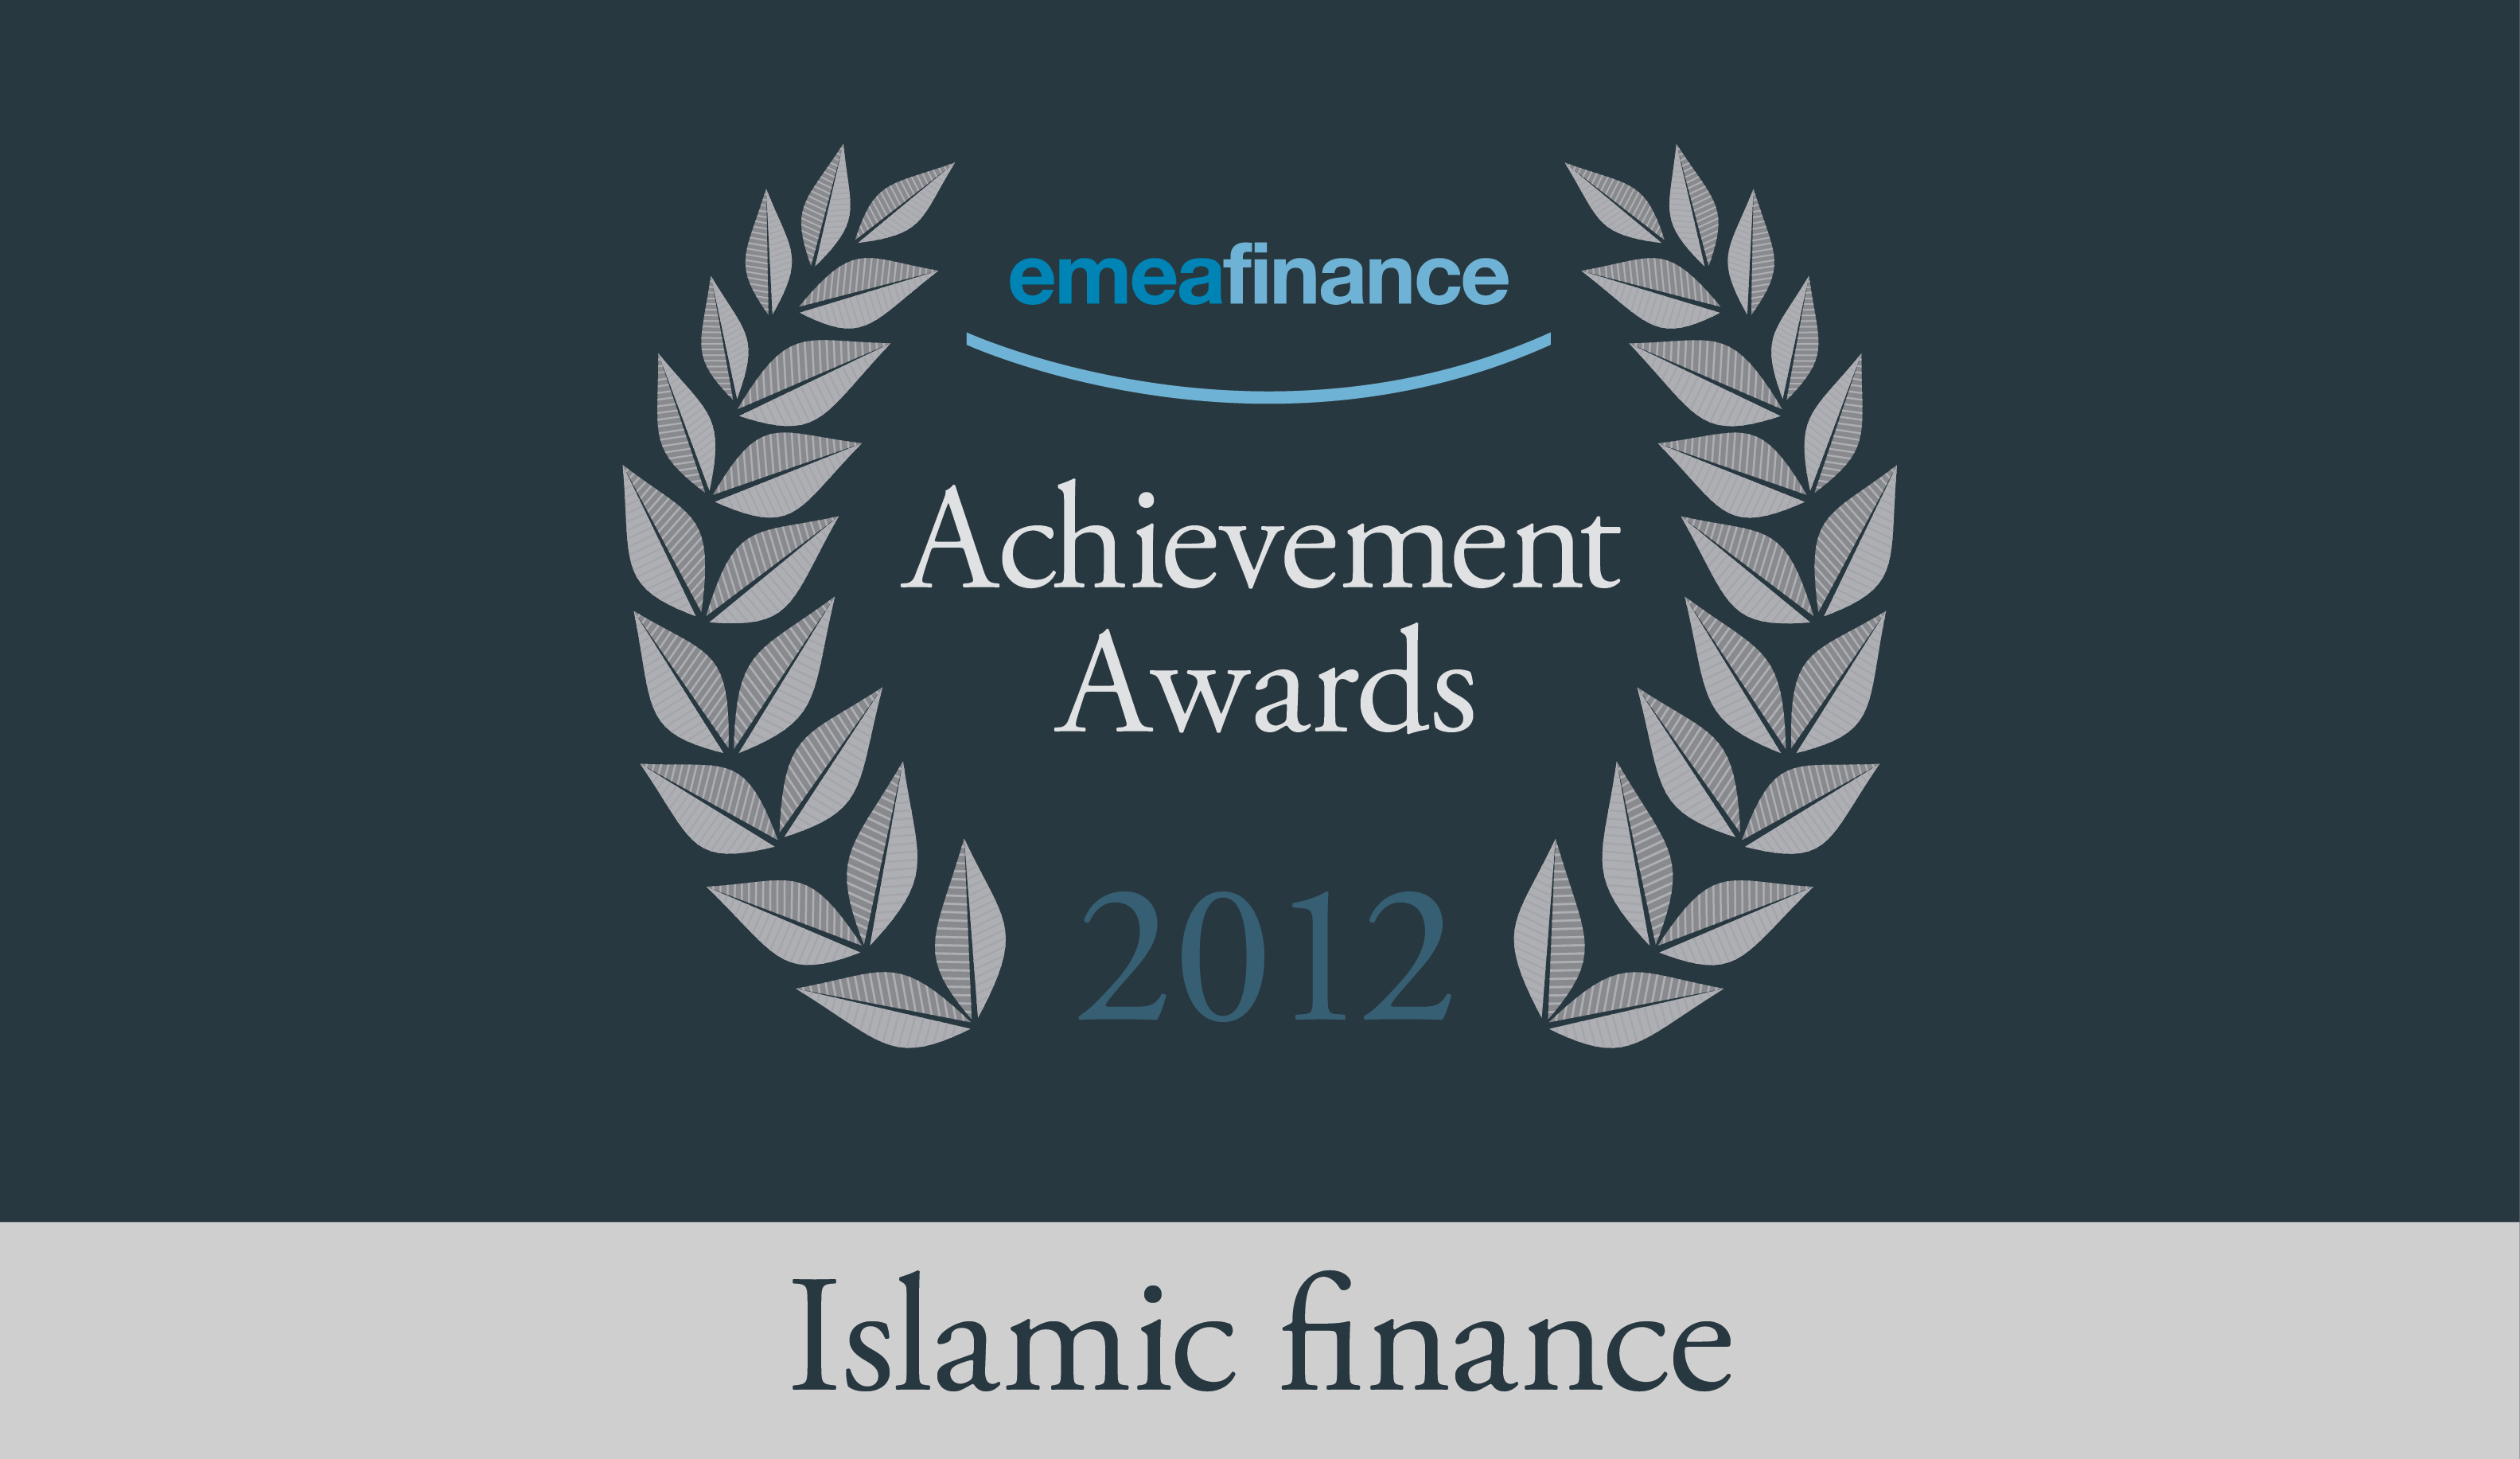 Achievement Awards 2012: Islamic finance